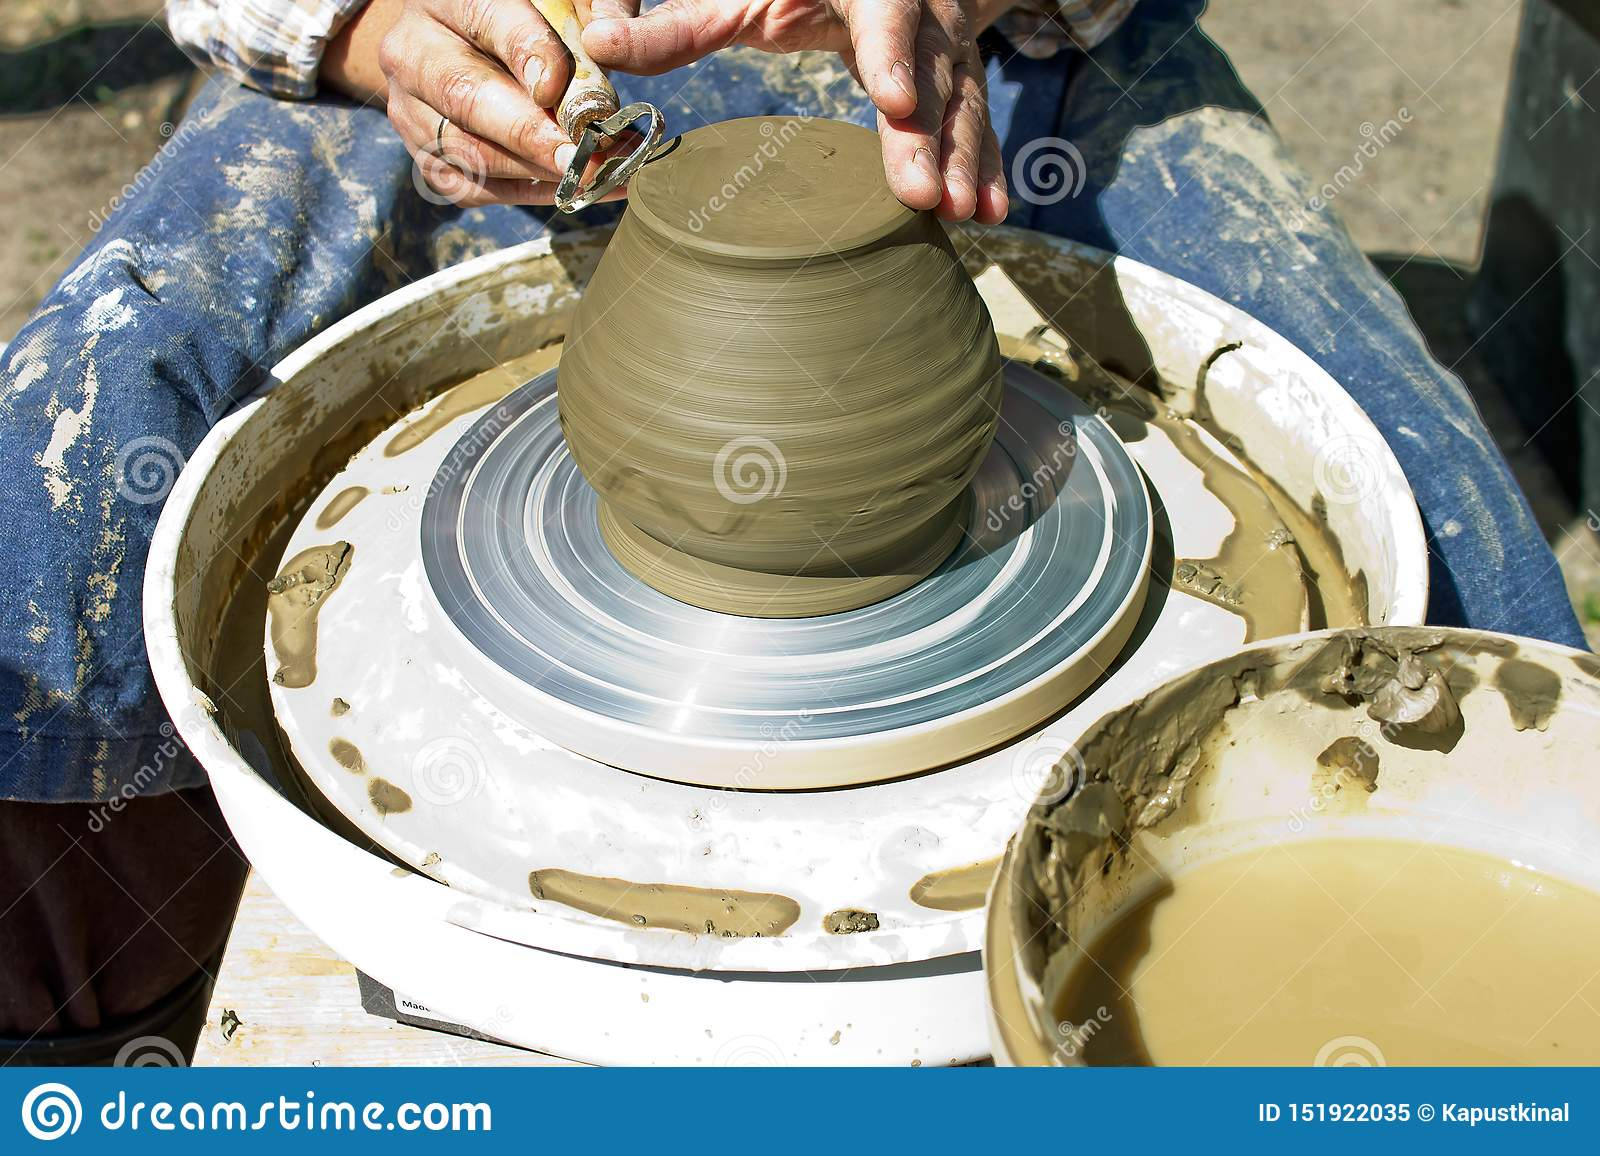 Working male hands on a potter`s wheel process a clay product in the form of a jug